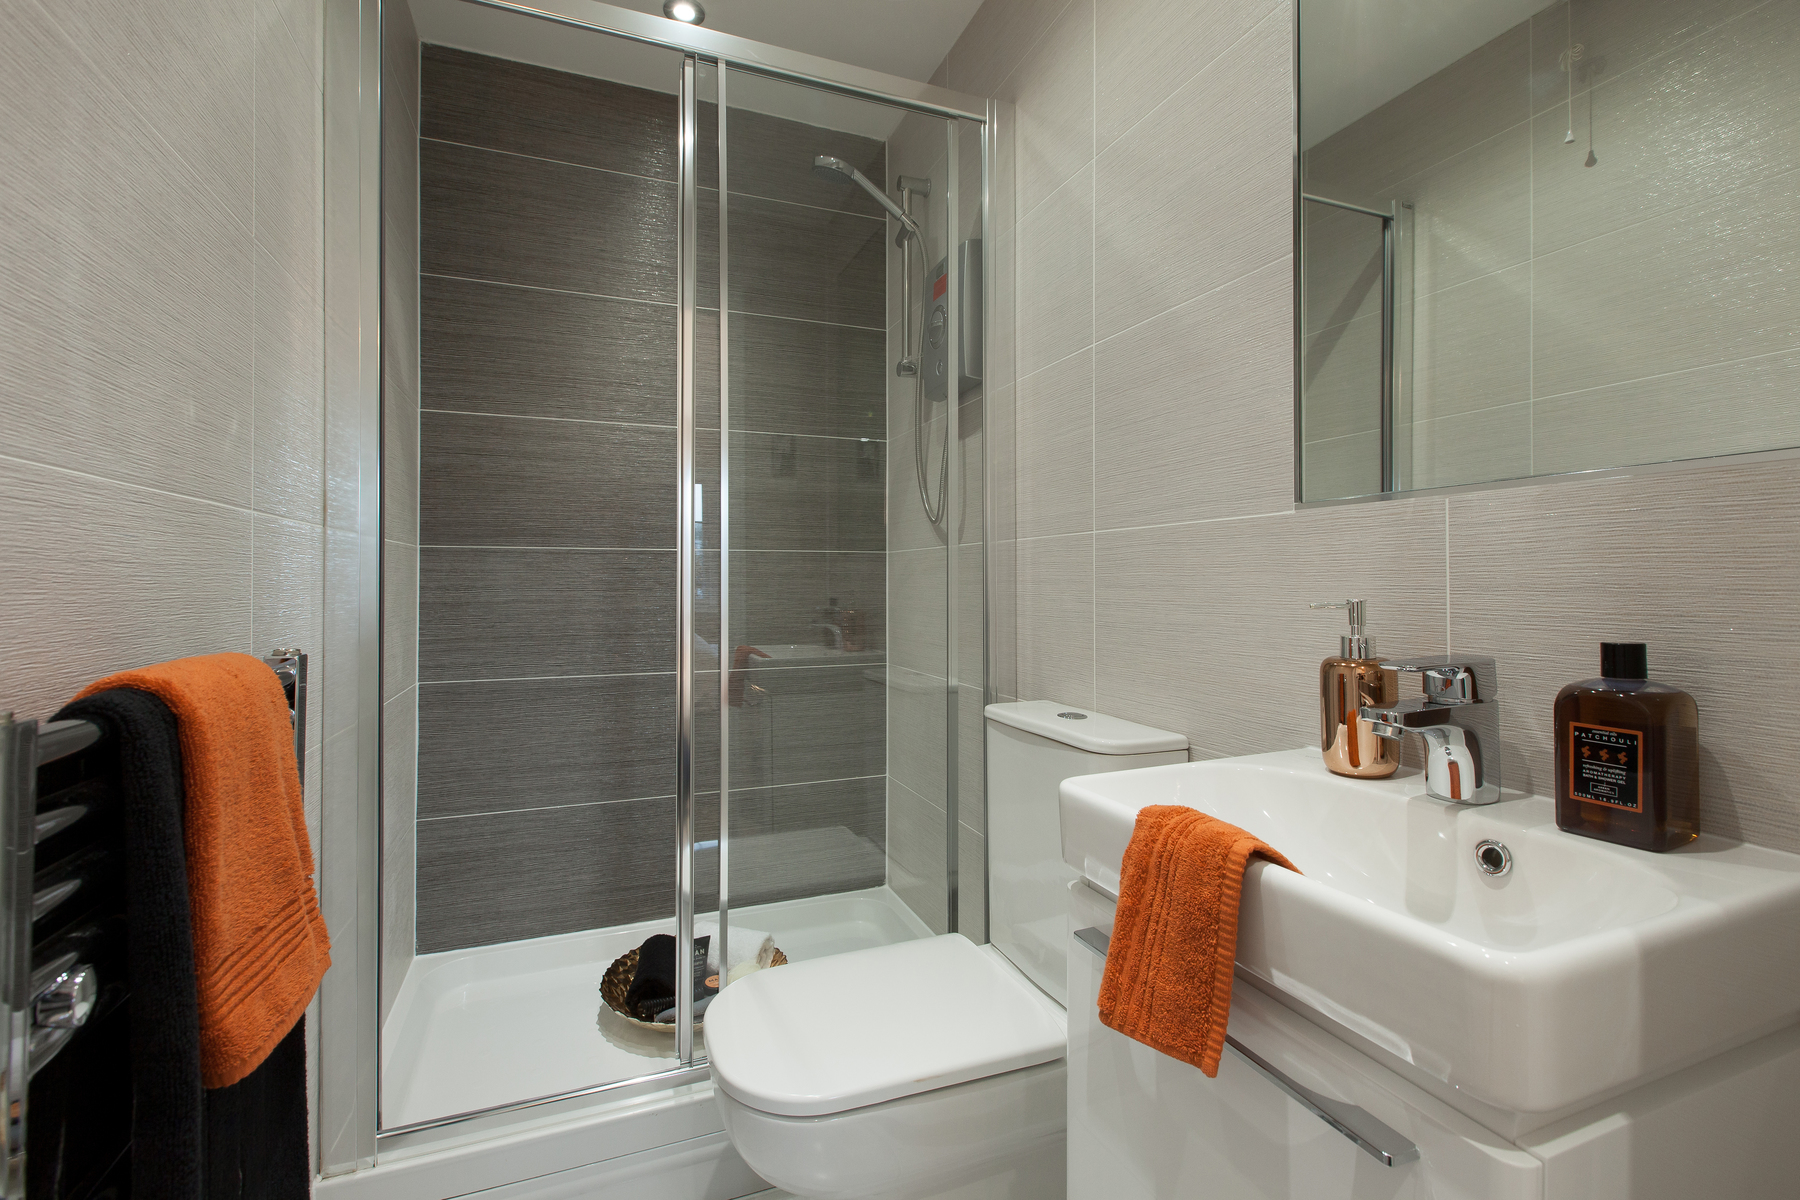 Midford - Colliers Court - En Suite